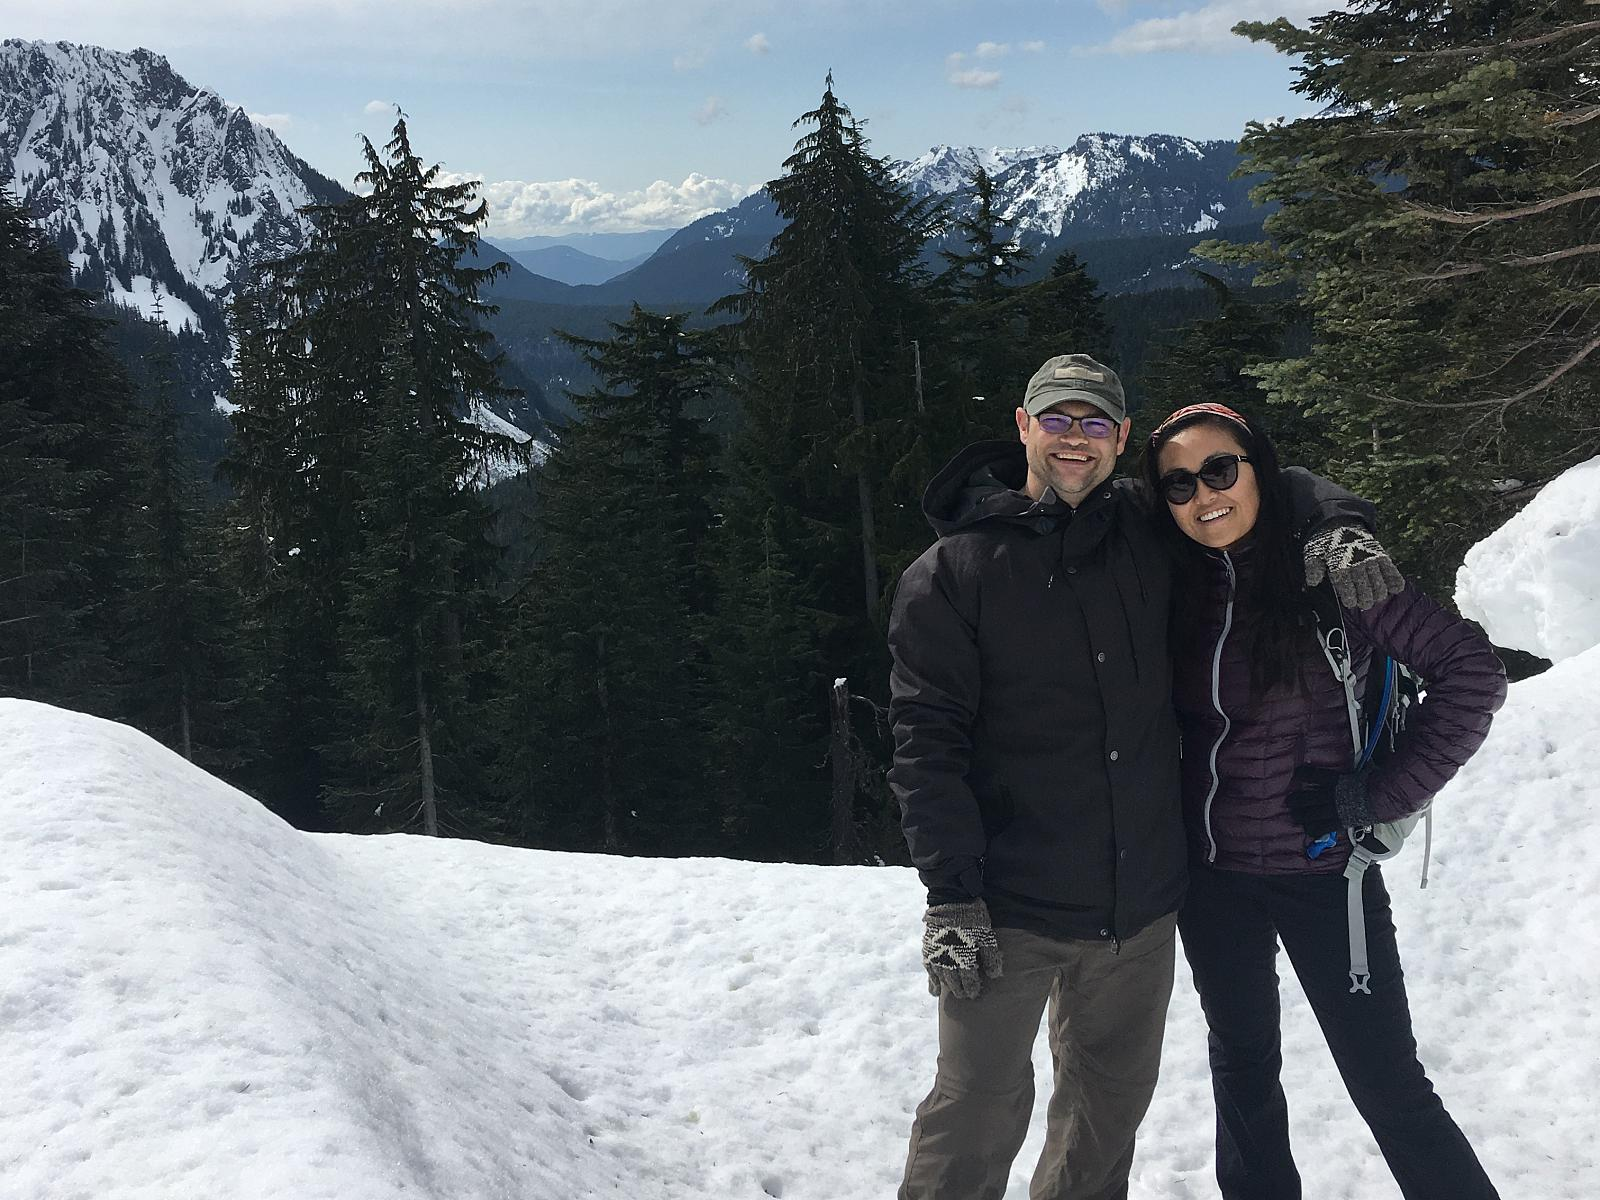 Peter with his arm around Ru in a picture of them on a snowy mountain top during a trip.